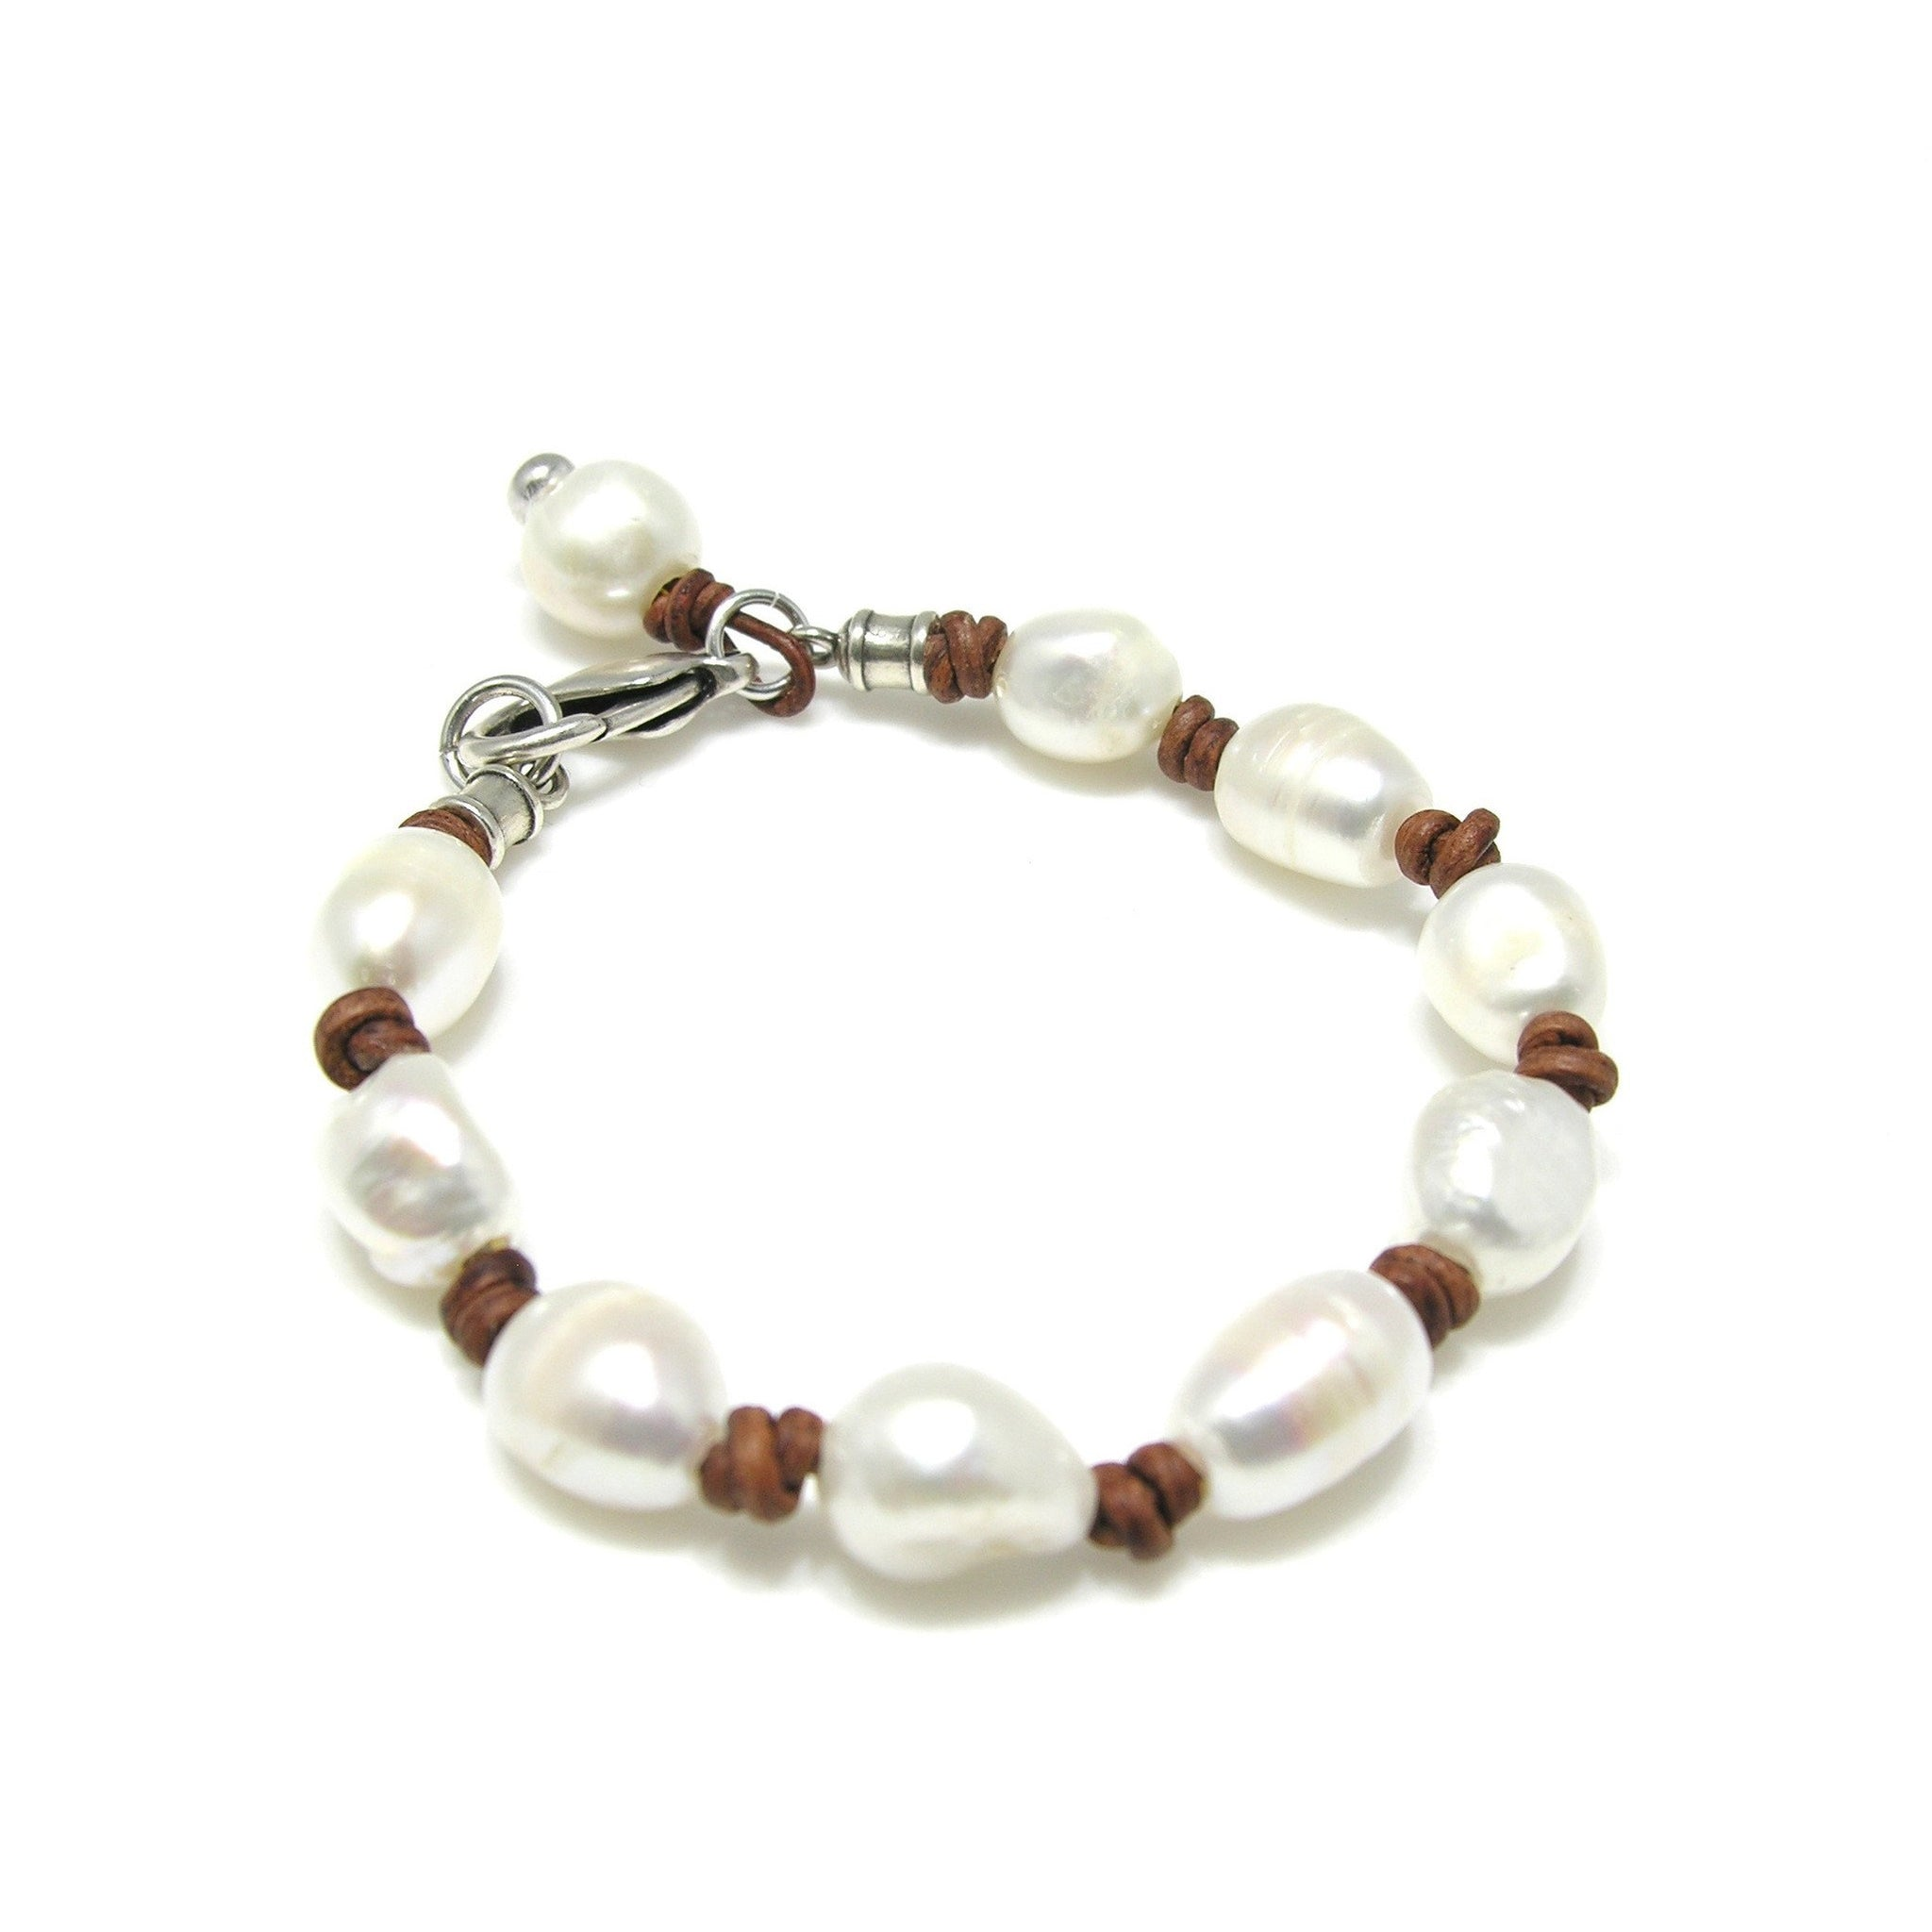 Leather Genuine Oval Pearl Knotted Bracelet - SPREE